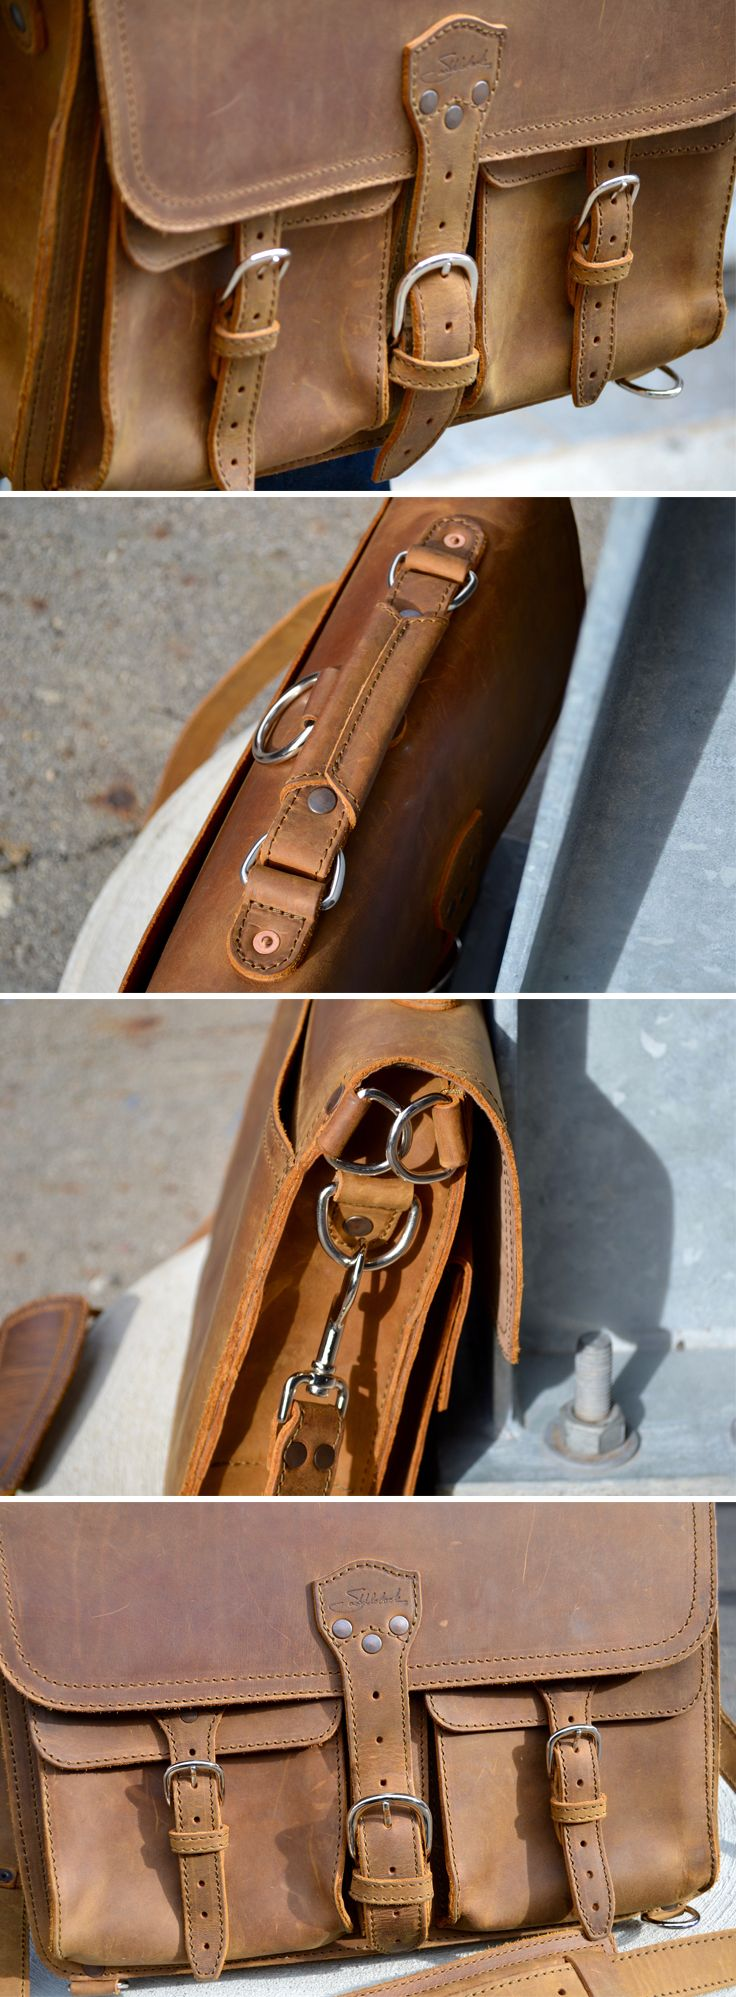 """""""You'll have to pry mine from my cold, dead hands."""" Jeremy Lahman of Urban Beardsman won't give up his Thin Front Pocket Leather Briefcase without a fight. Come read why."""